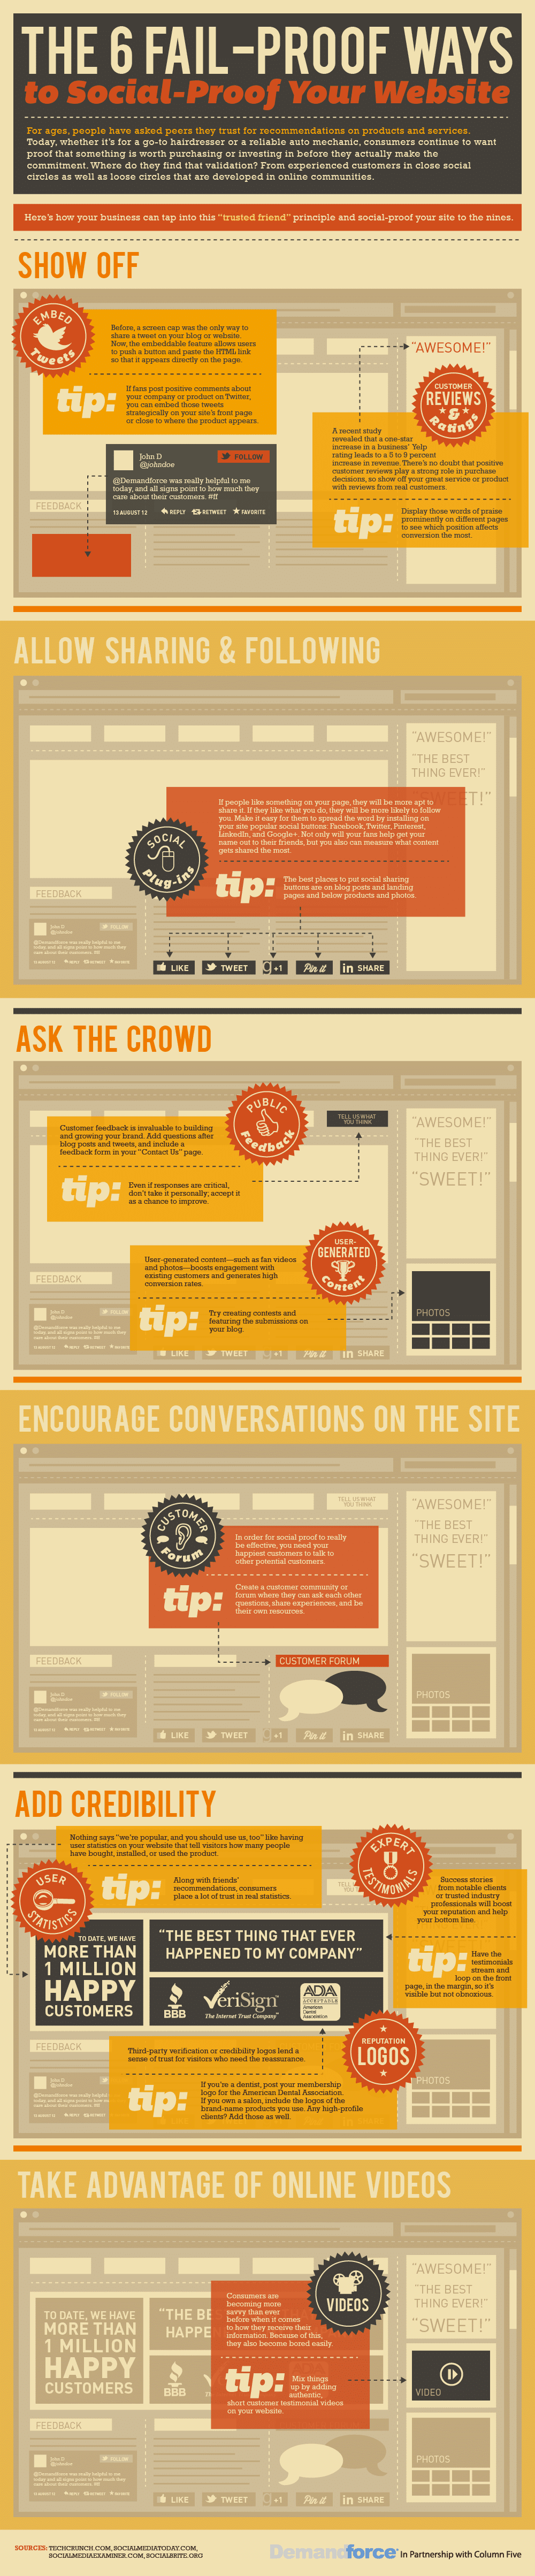 social-proof-website-tips-infographic